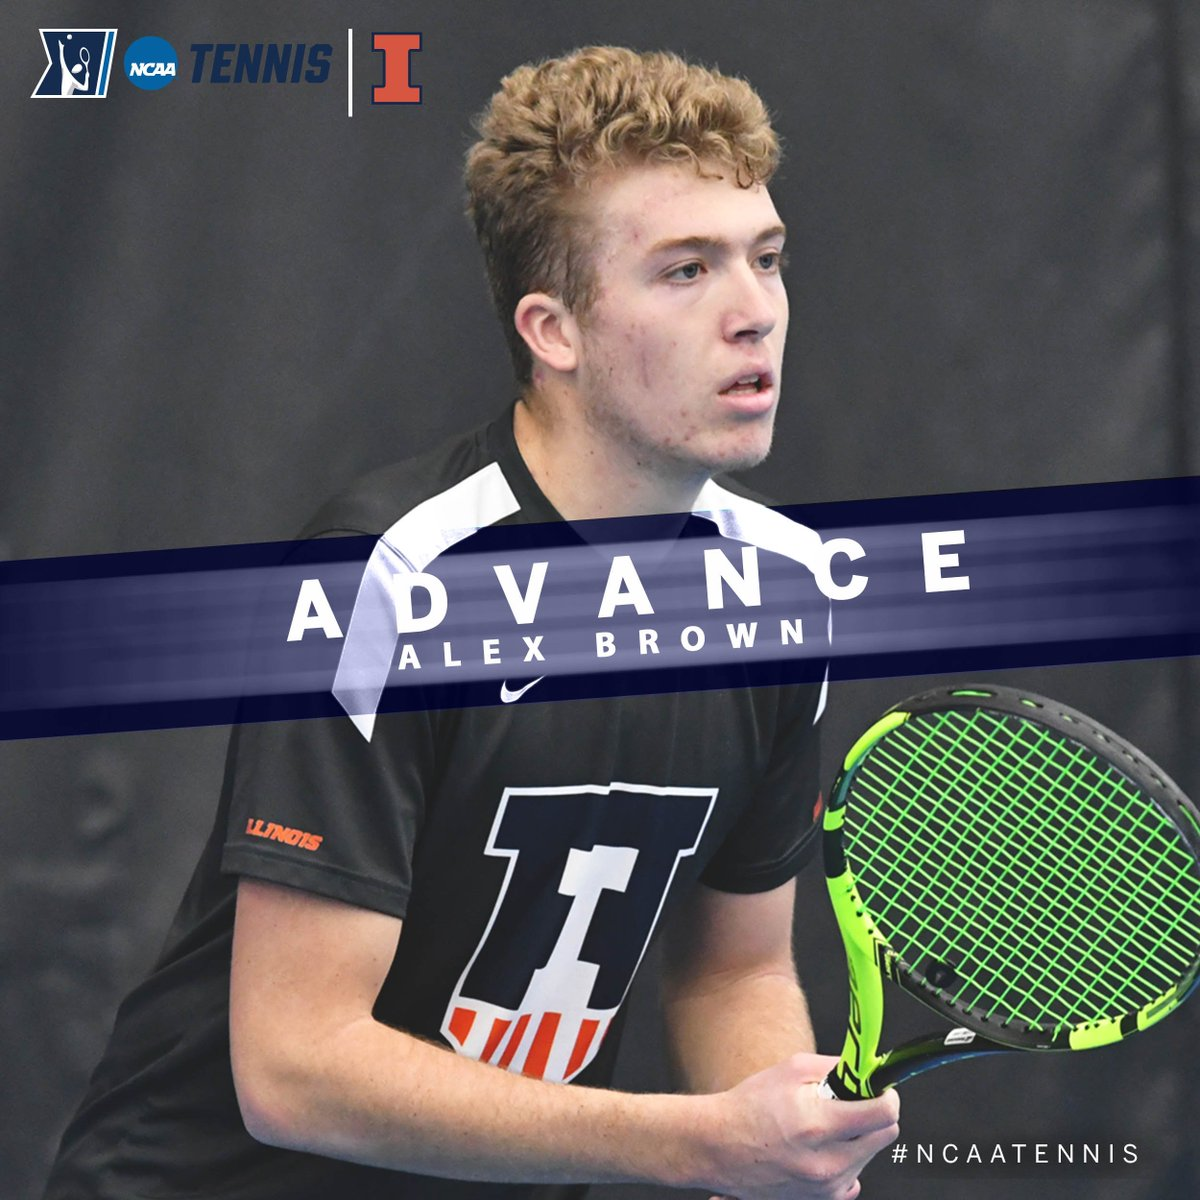 On the men's side, Alex Brown of @IlliniMTennis defeated Ryotaro Matsumura of Kentucky, 6-3, 6-1, in the @NCAATennis Singles First Round on Monday in Orlando.